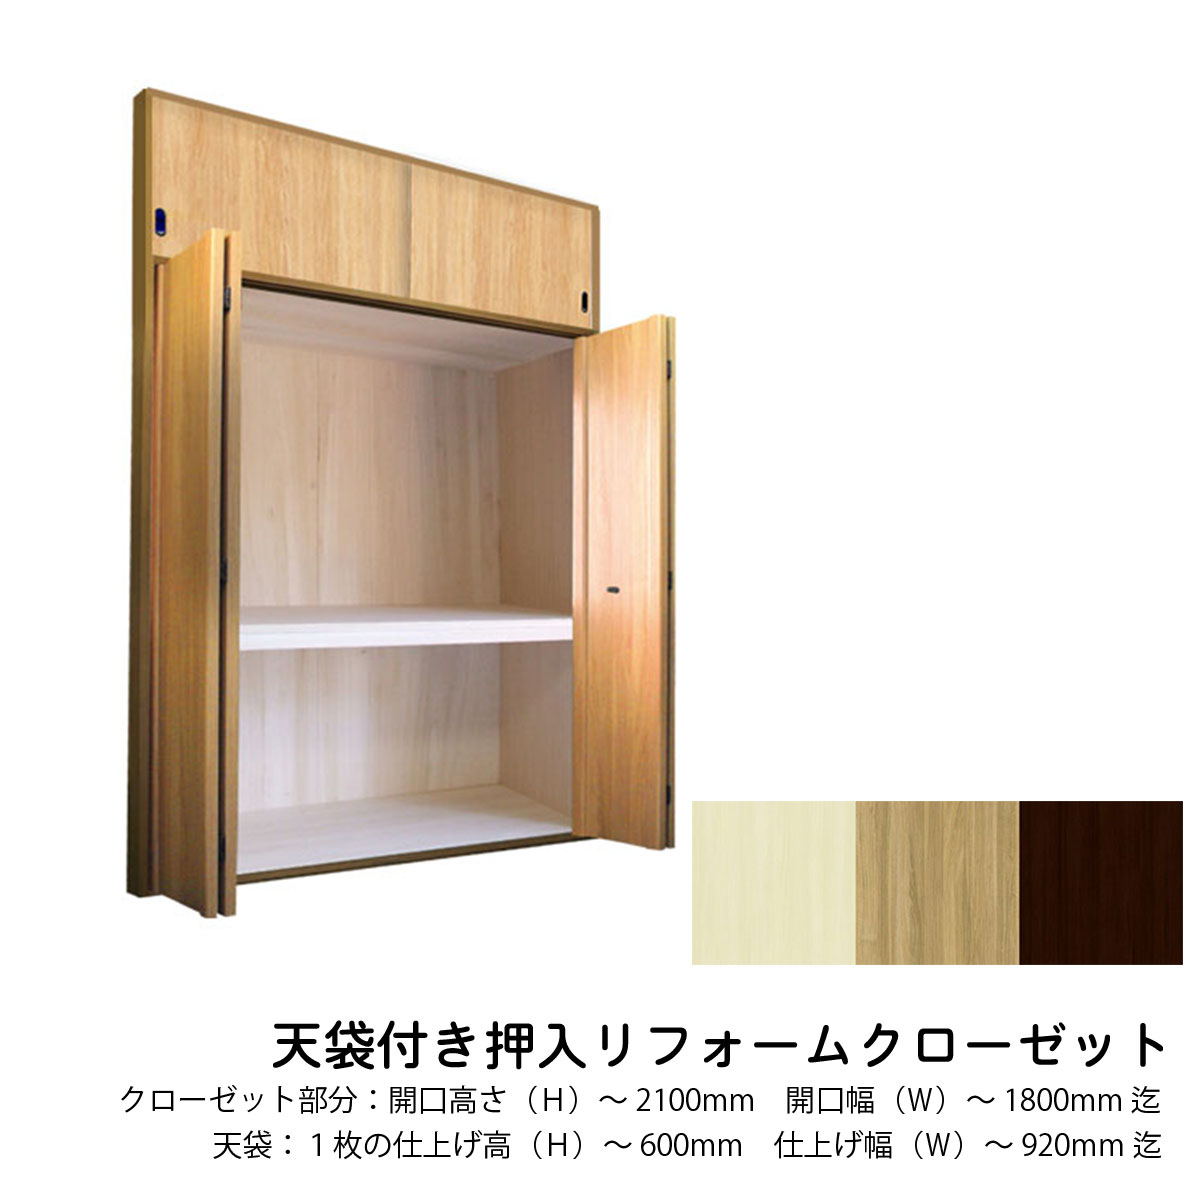 Marketable Goods Wall Shelf Closet Reform Closet Two Pieces Of Four Pieces Of Orito Wall Shelves Belonging To To Closet Opening H 2 100mm